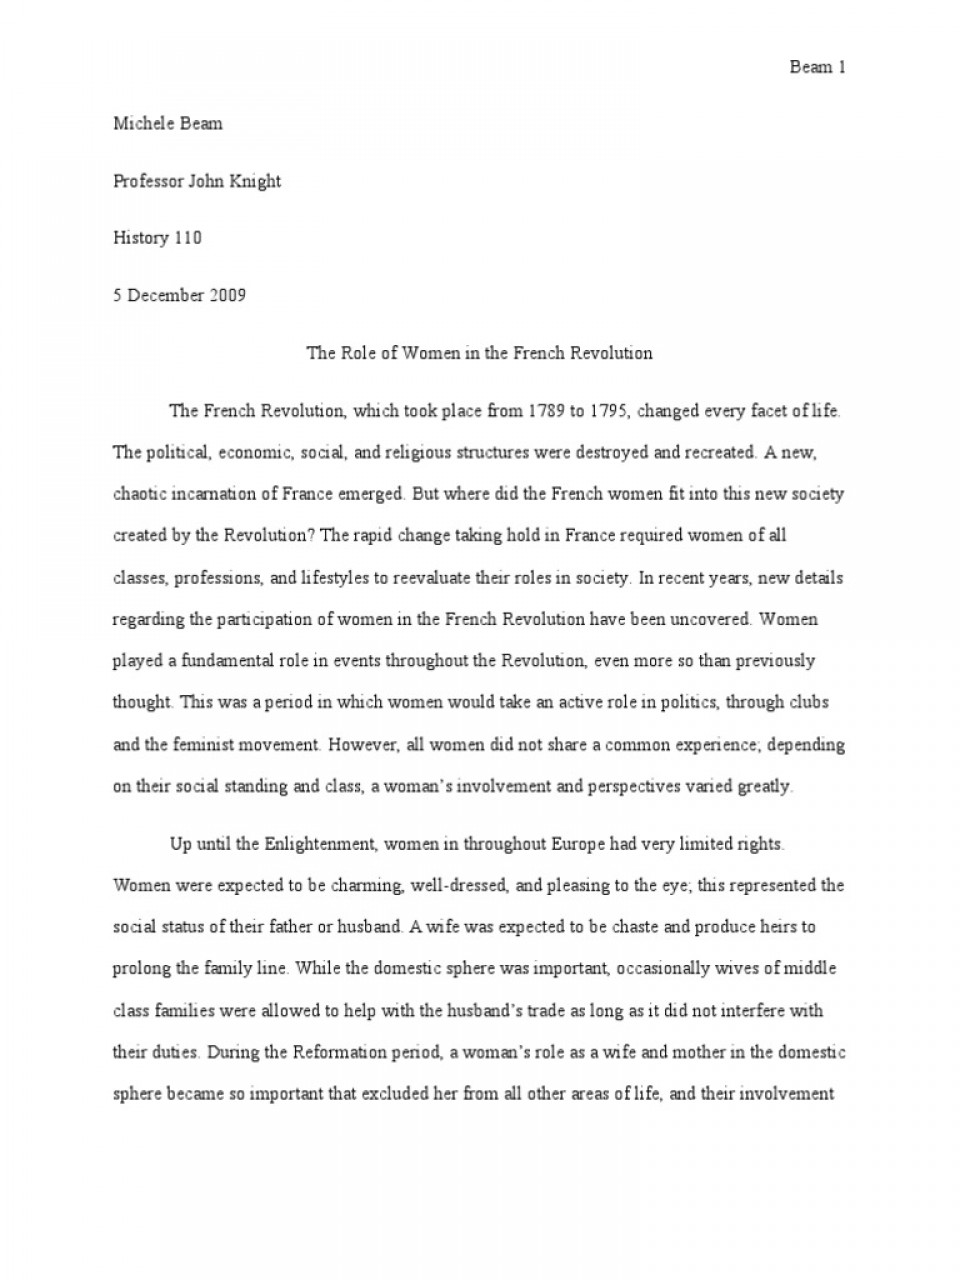 013 French Revolution Essay Phenomenal Outline Titles Causes Conclusion 960